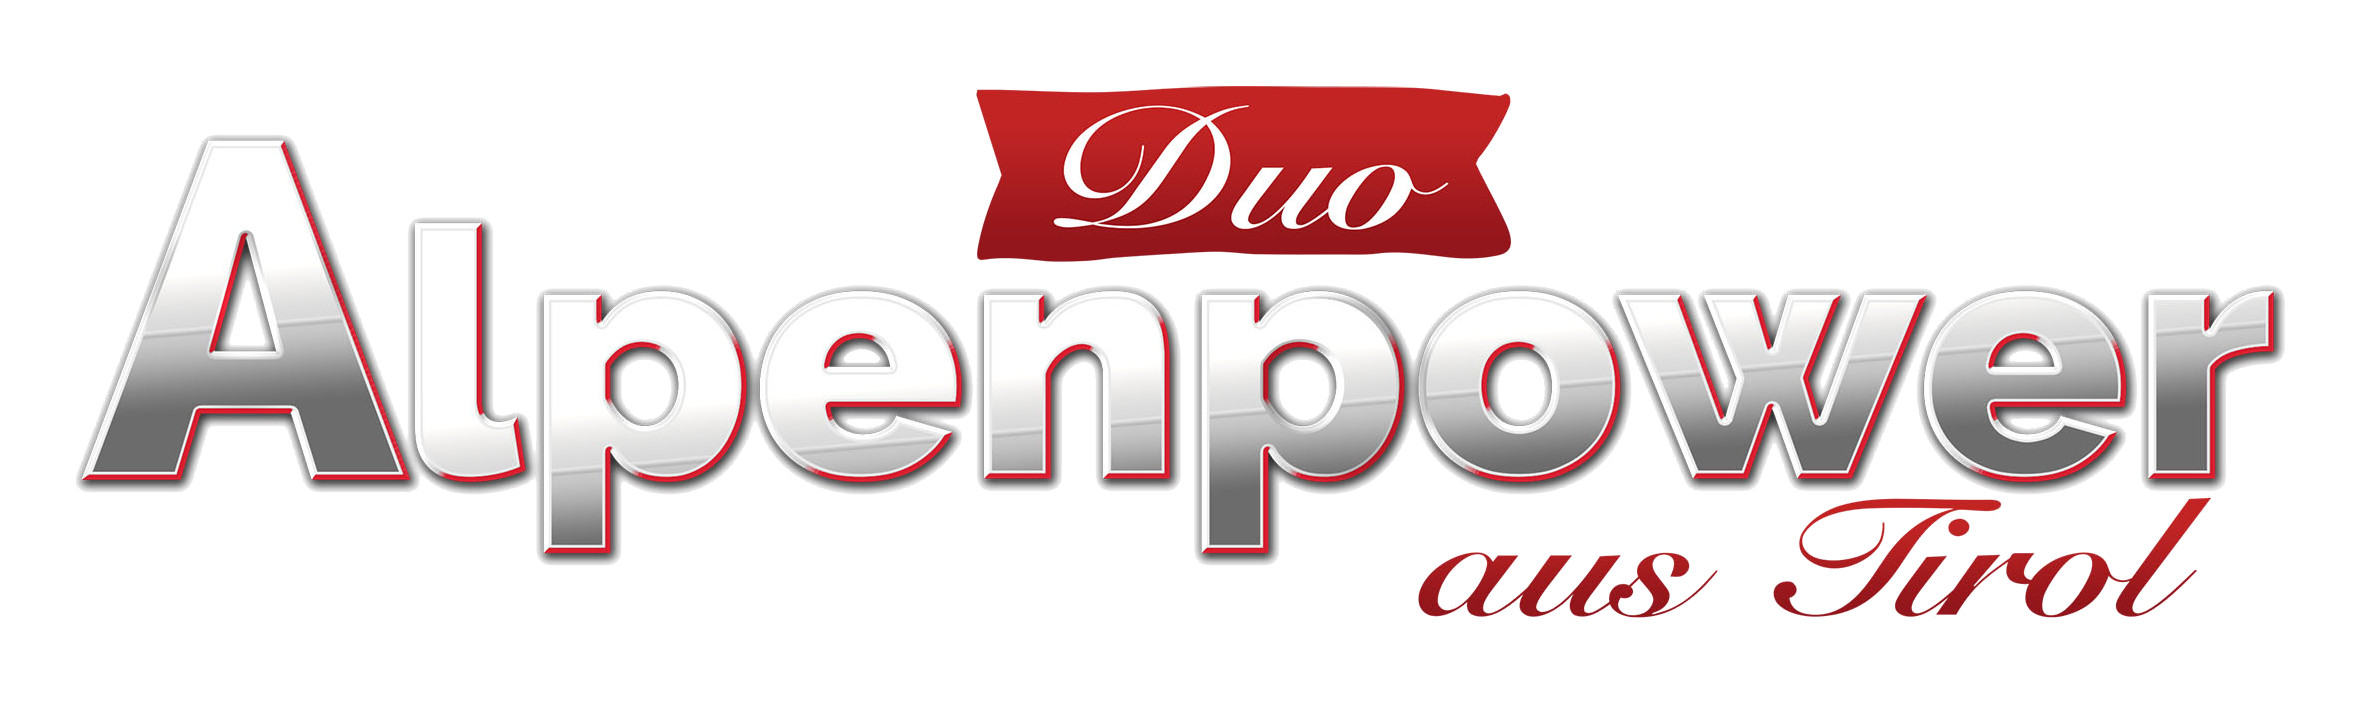 Duo Alpenpower aus Tirol